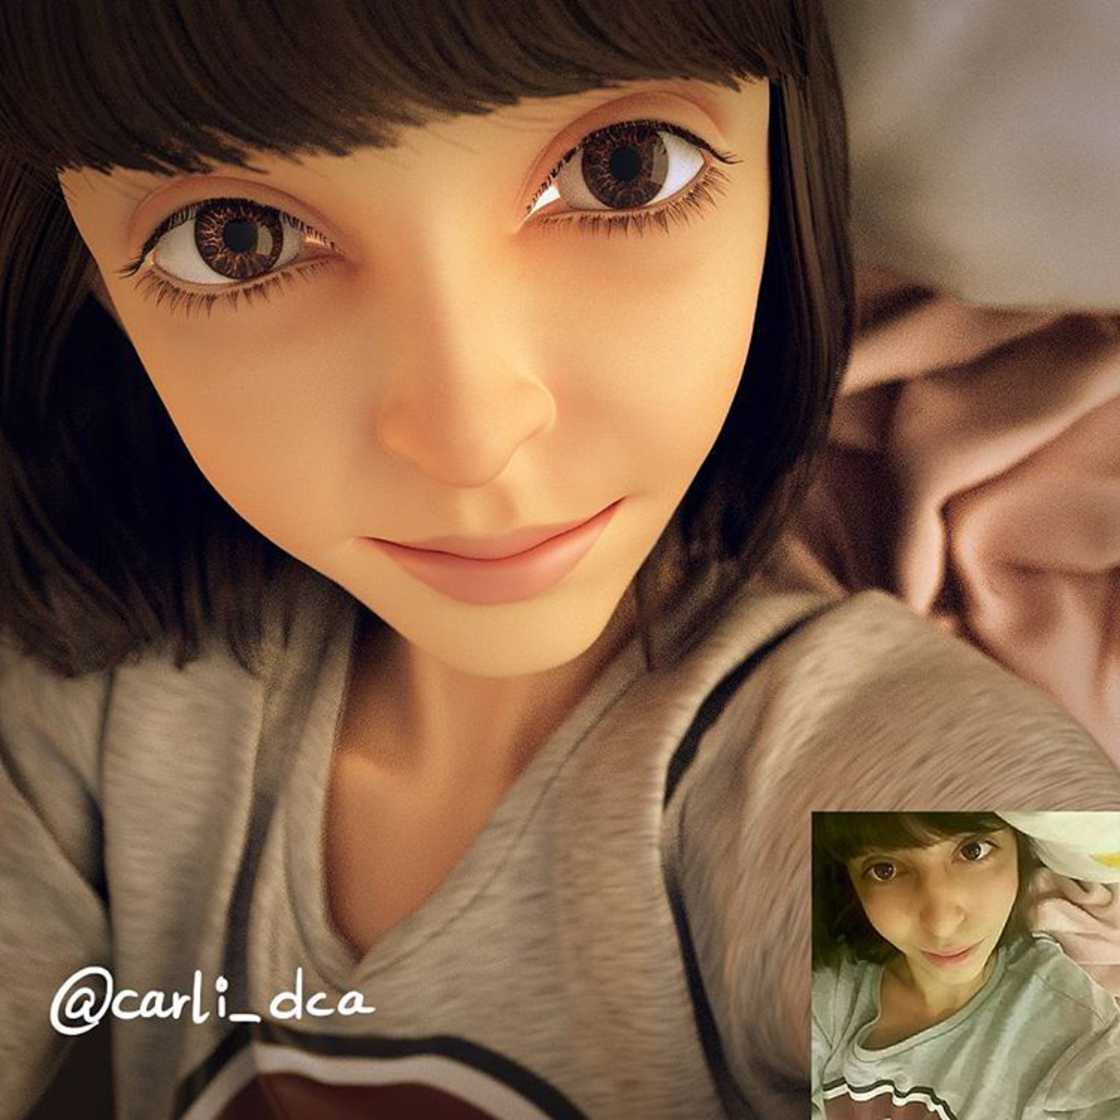 random-profile-pictures-transformed-into-3d-portraits-11